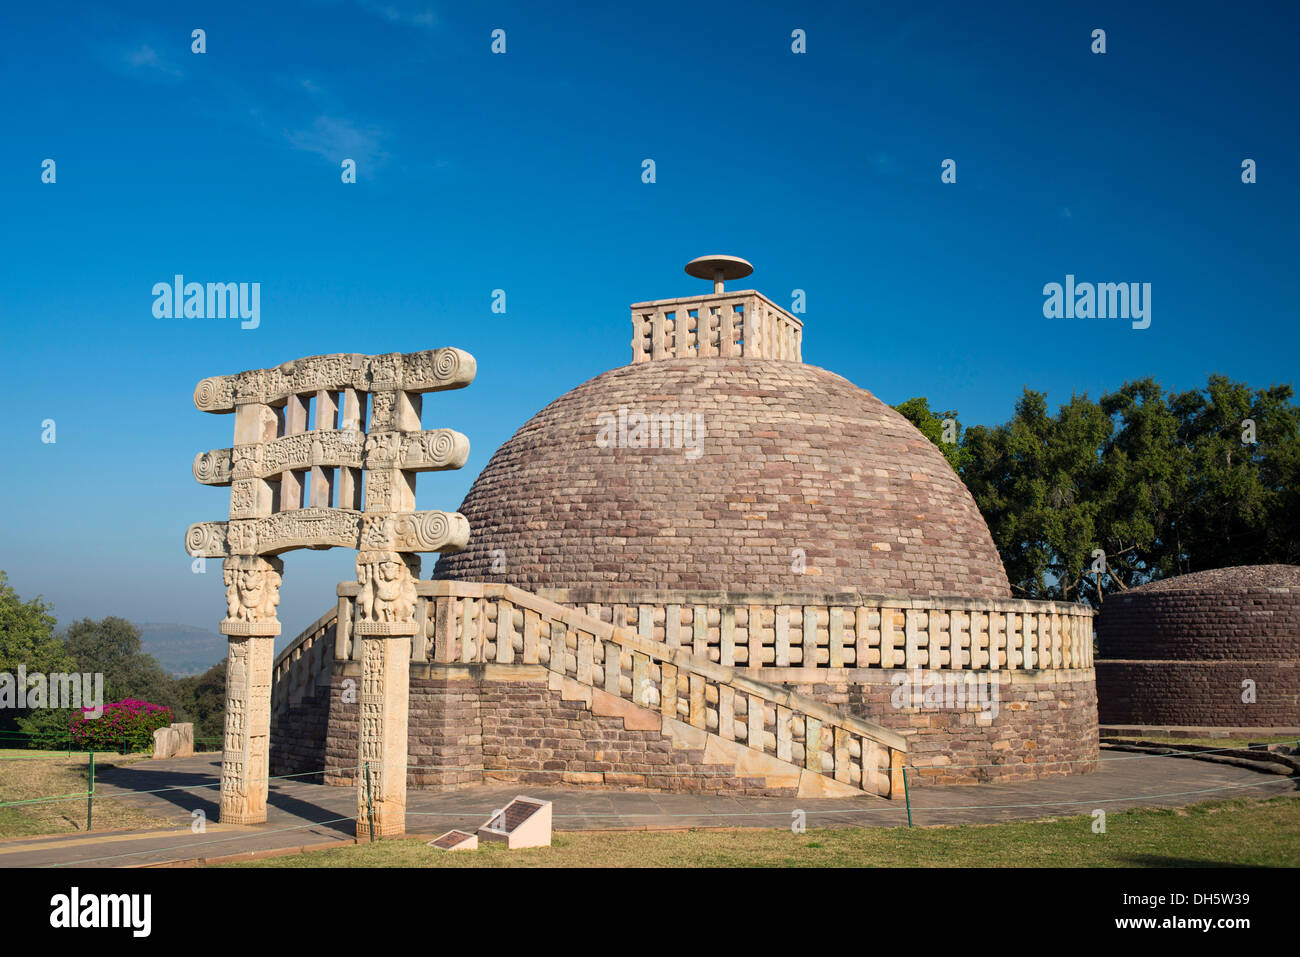 Toran or sacred gateway with stone reliefs at the Buddhist stupa, Stupa No. 1, a large stupa from 2nd century BC, UNESCO World - Stock Image